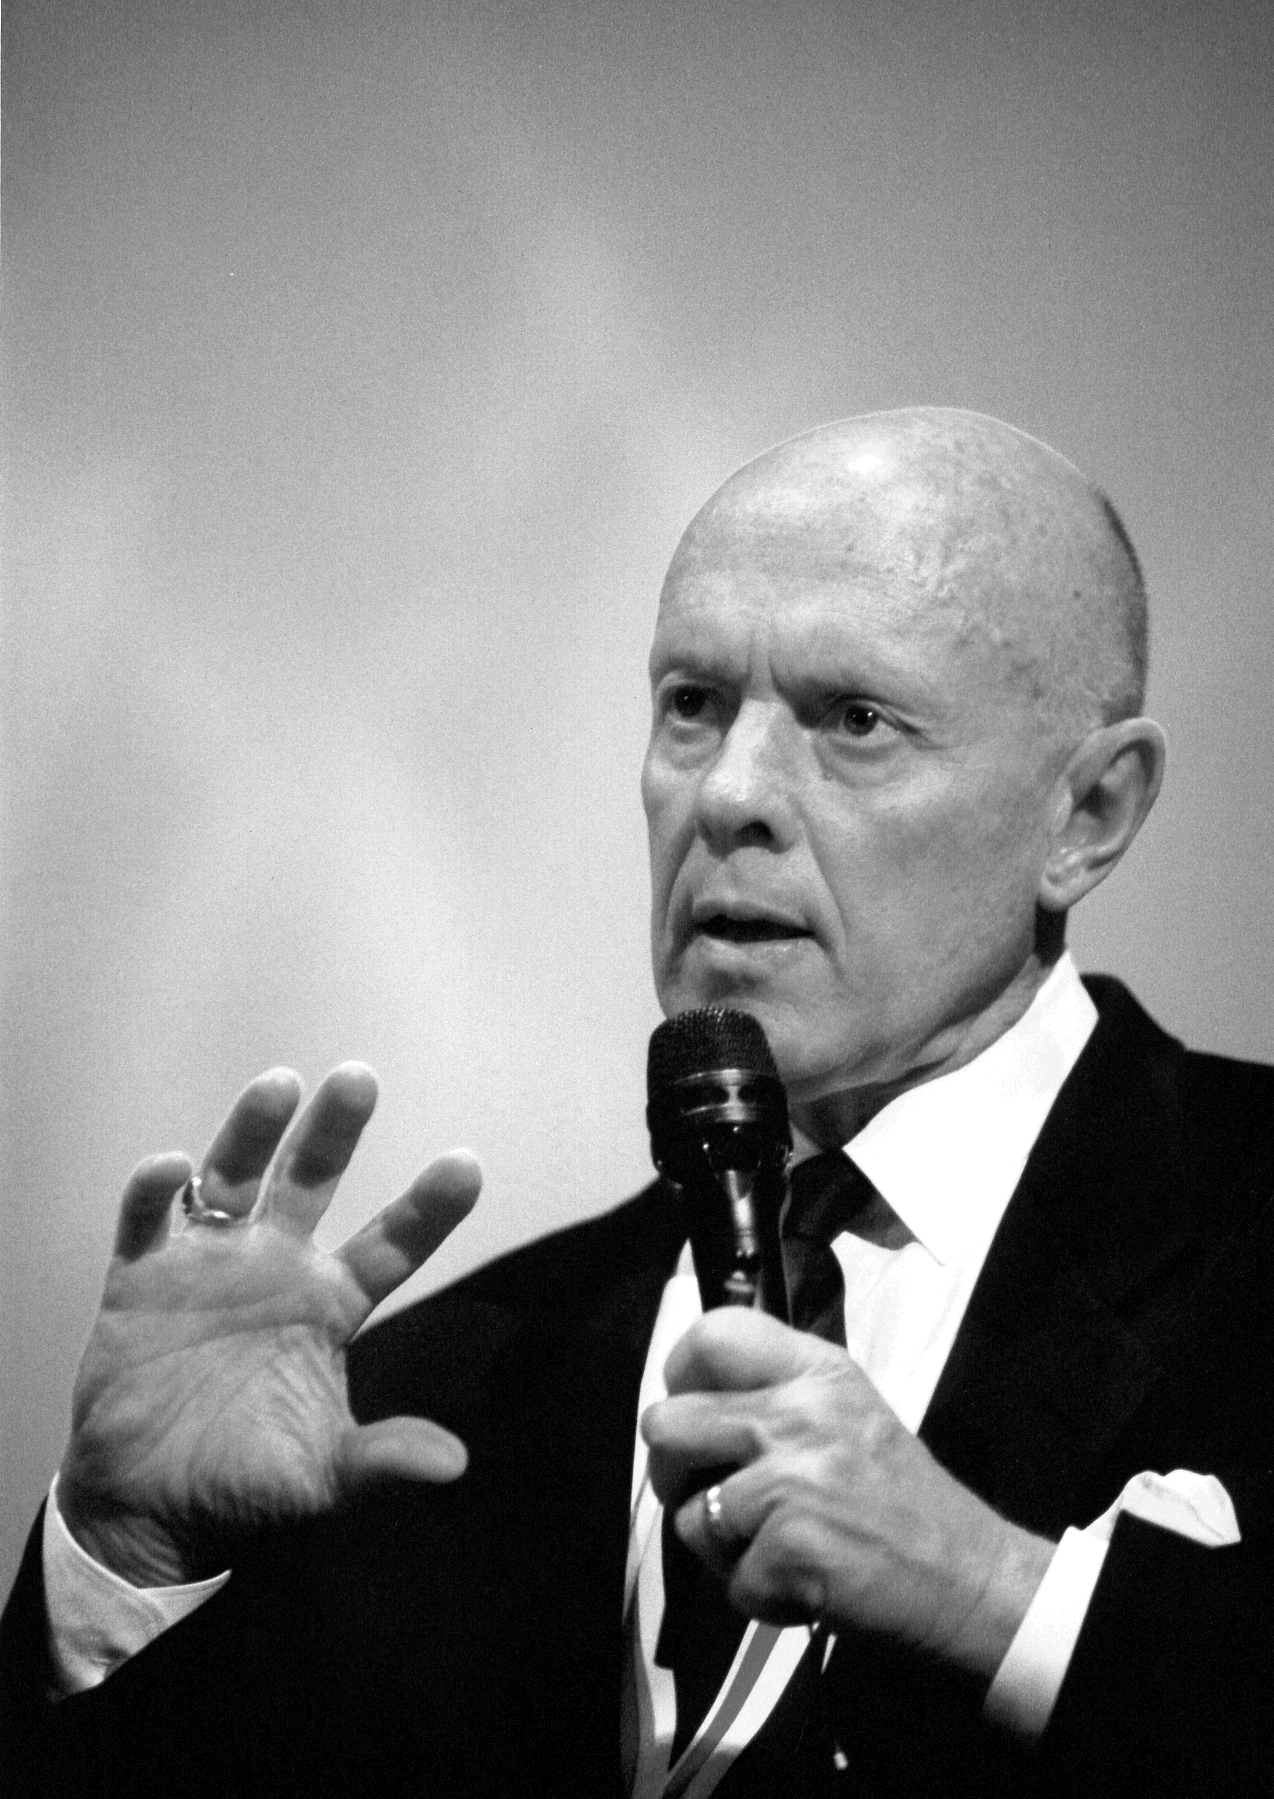 Live, Love, Laugh, Leave a Legacy. Dr. Stephen Covey changed my life. He made me think about what's truly important in my life.